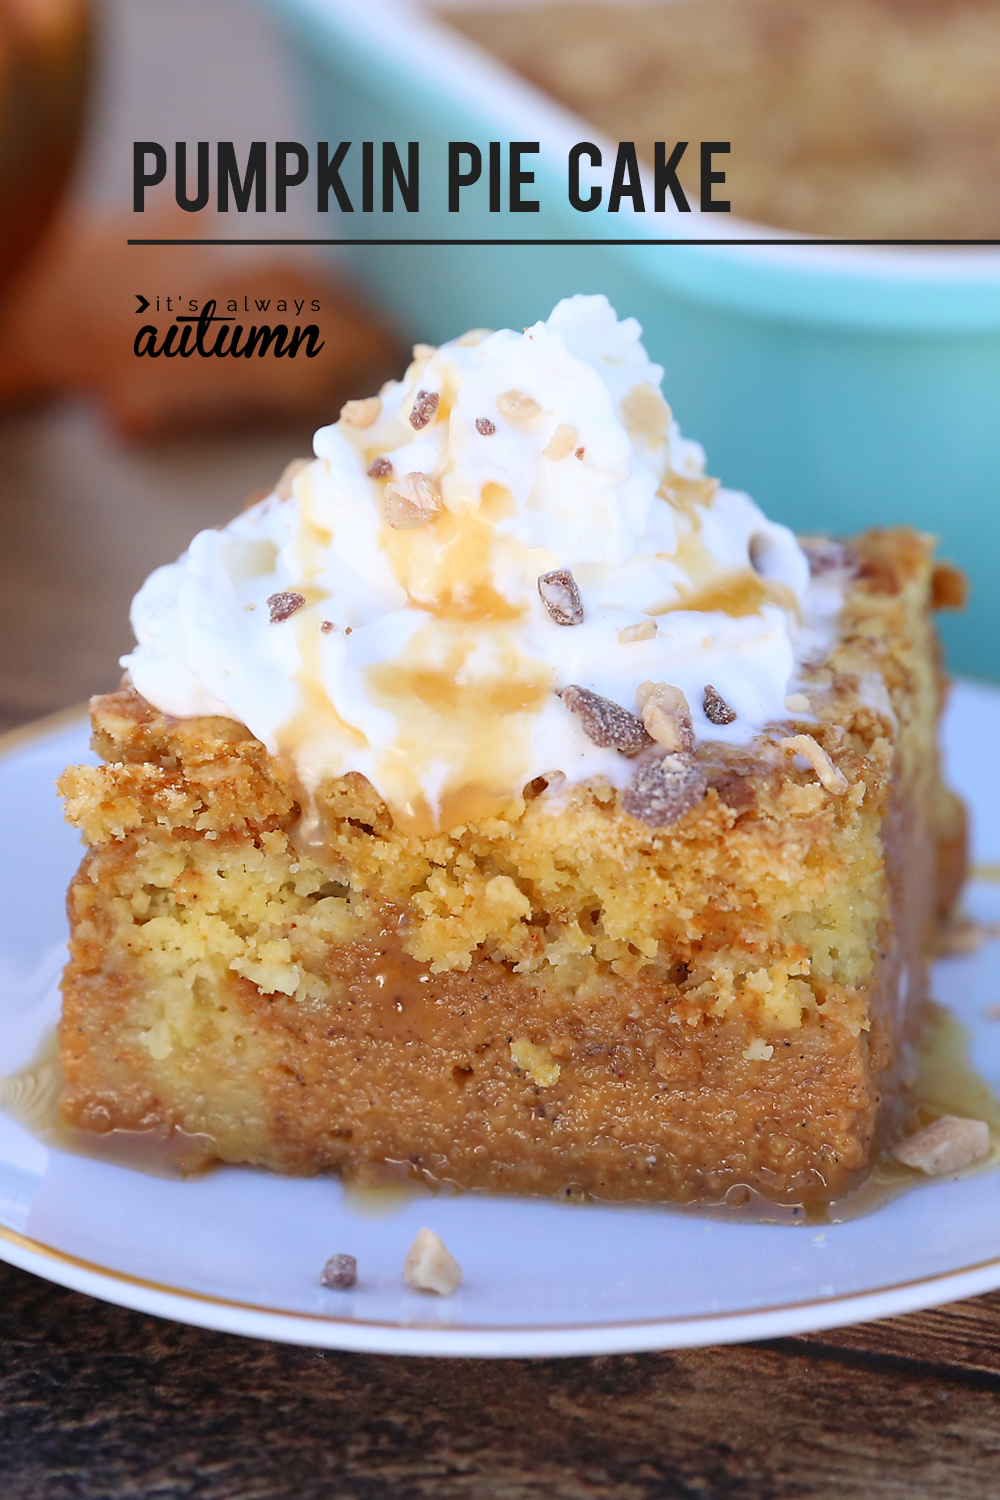 Pumpkin pie cake will be your new favorite pumpkin recipe! Pumpkin pie swirled with buttery cake crumbles - even people who don't like pumpkin pie love this recipe! Plus it feeds a crowd.